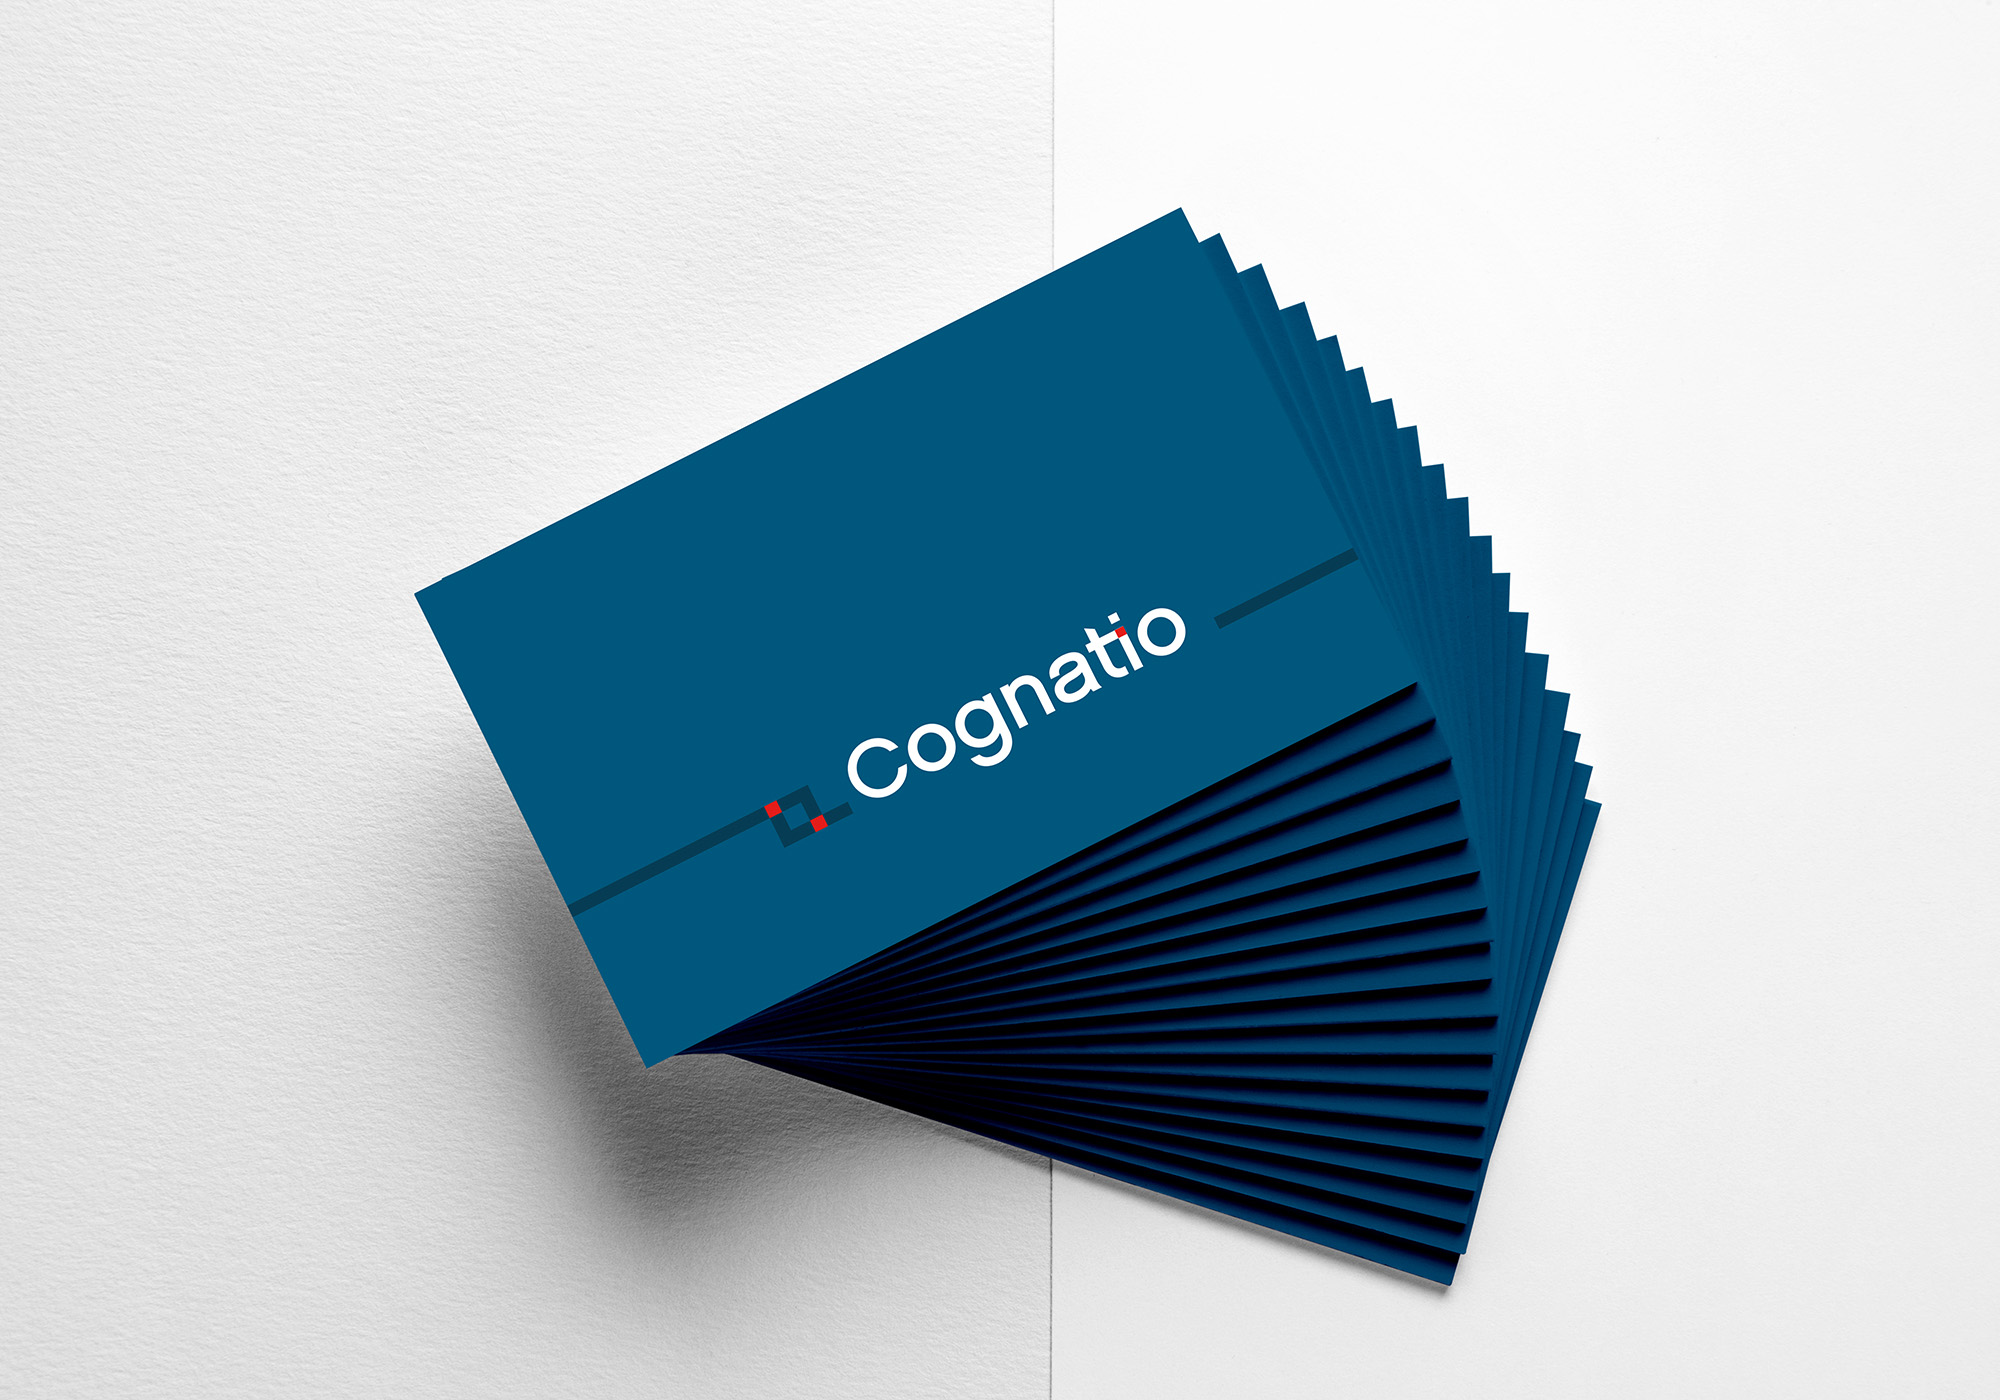 Asia-Pacific NewLaw Firms: The Cognatio difference